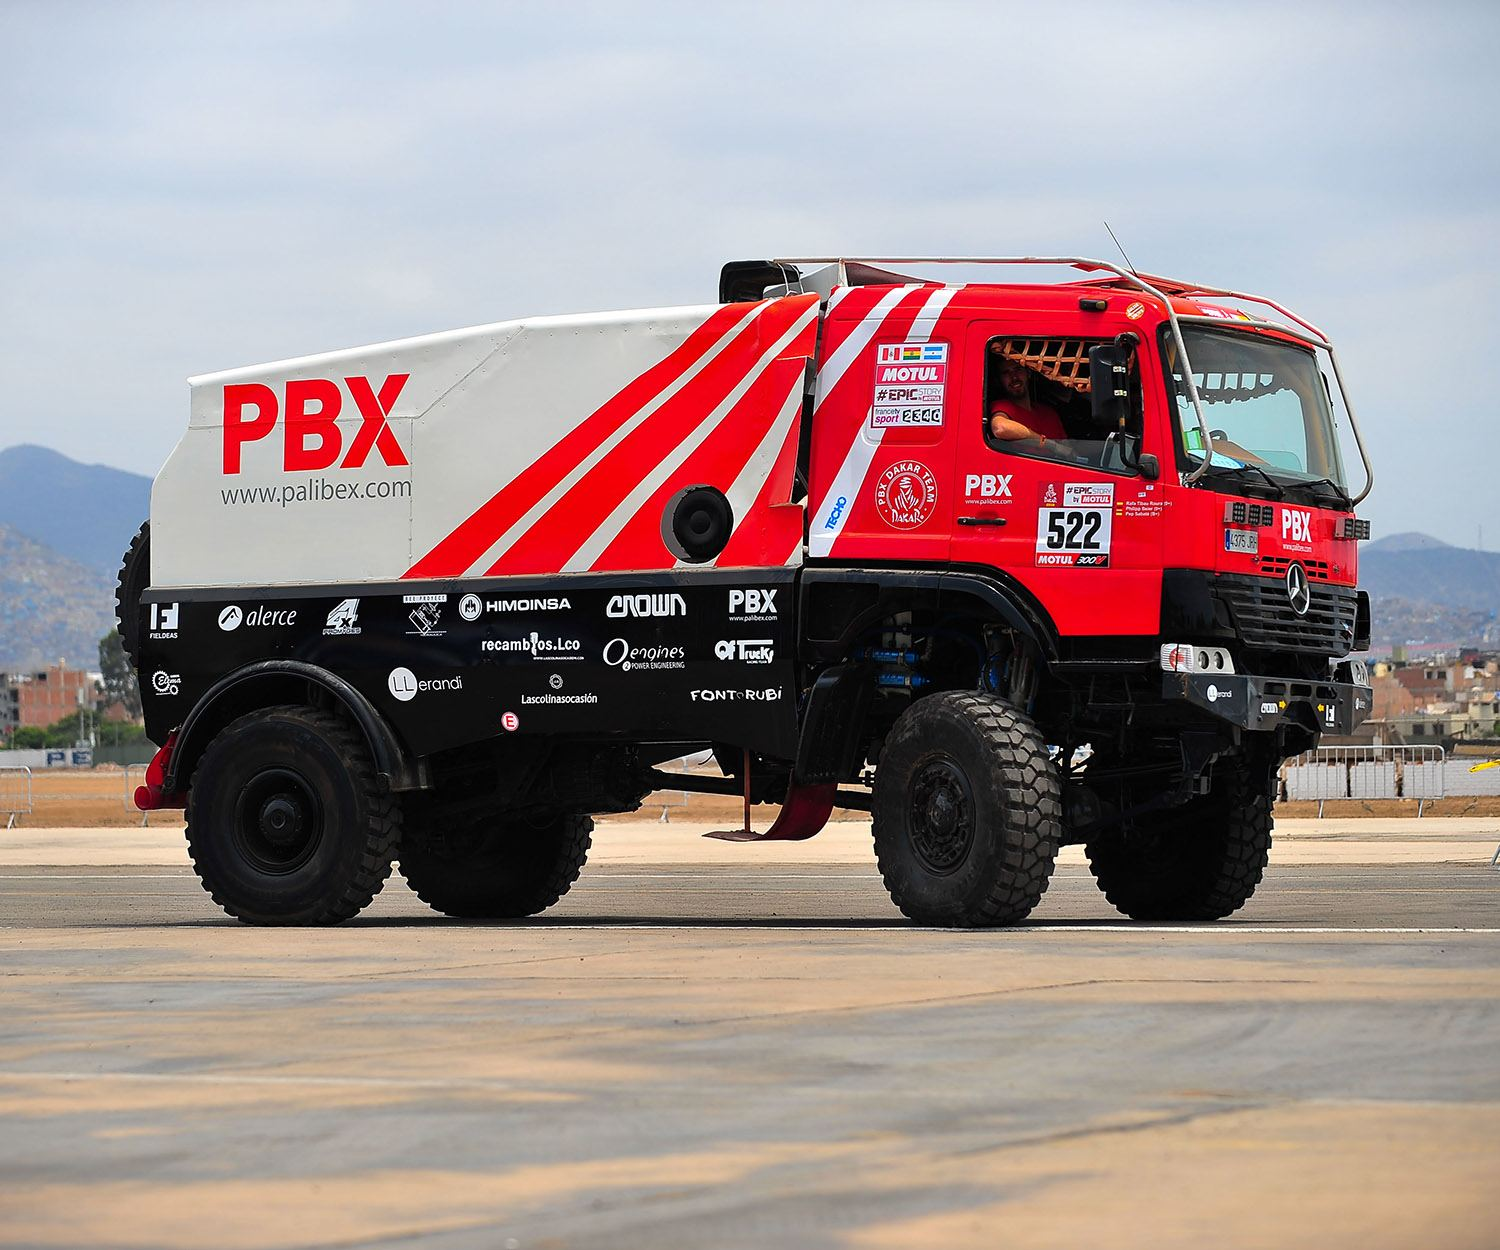 522-2018-01-06-PBX DAKAR 2018 TEAM (1)